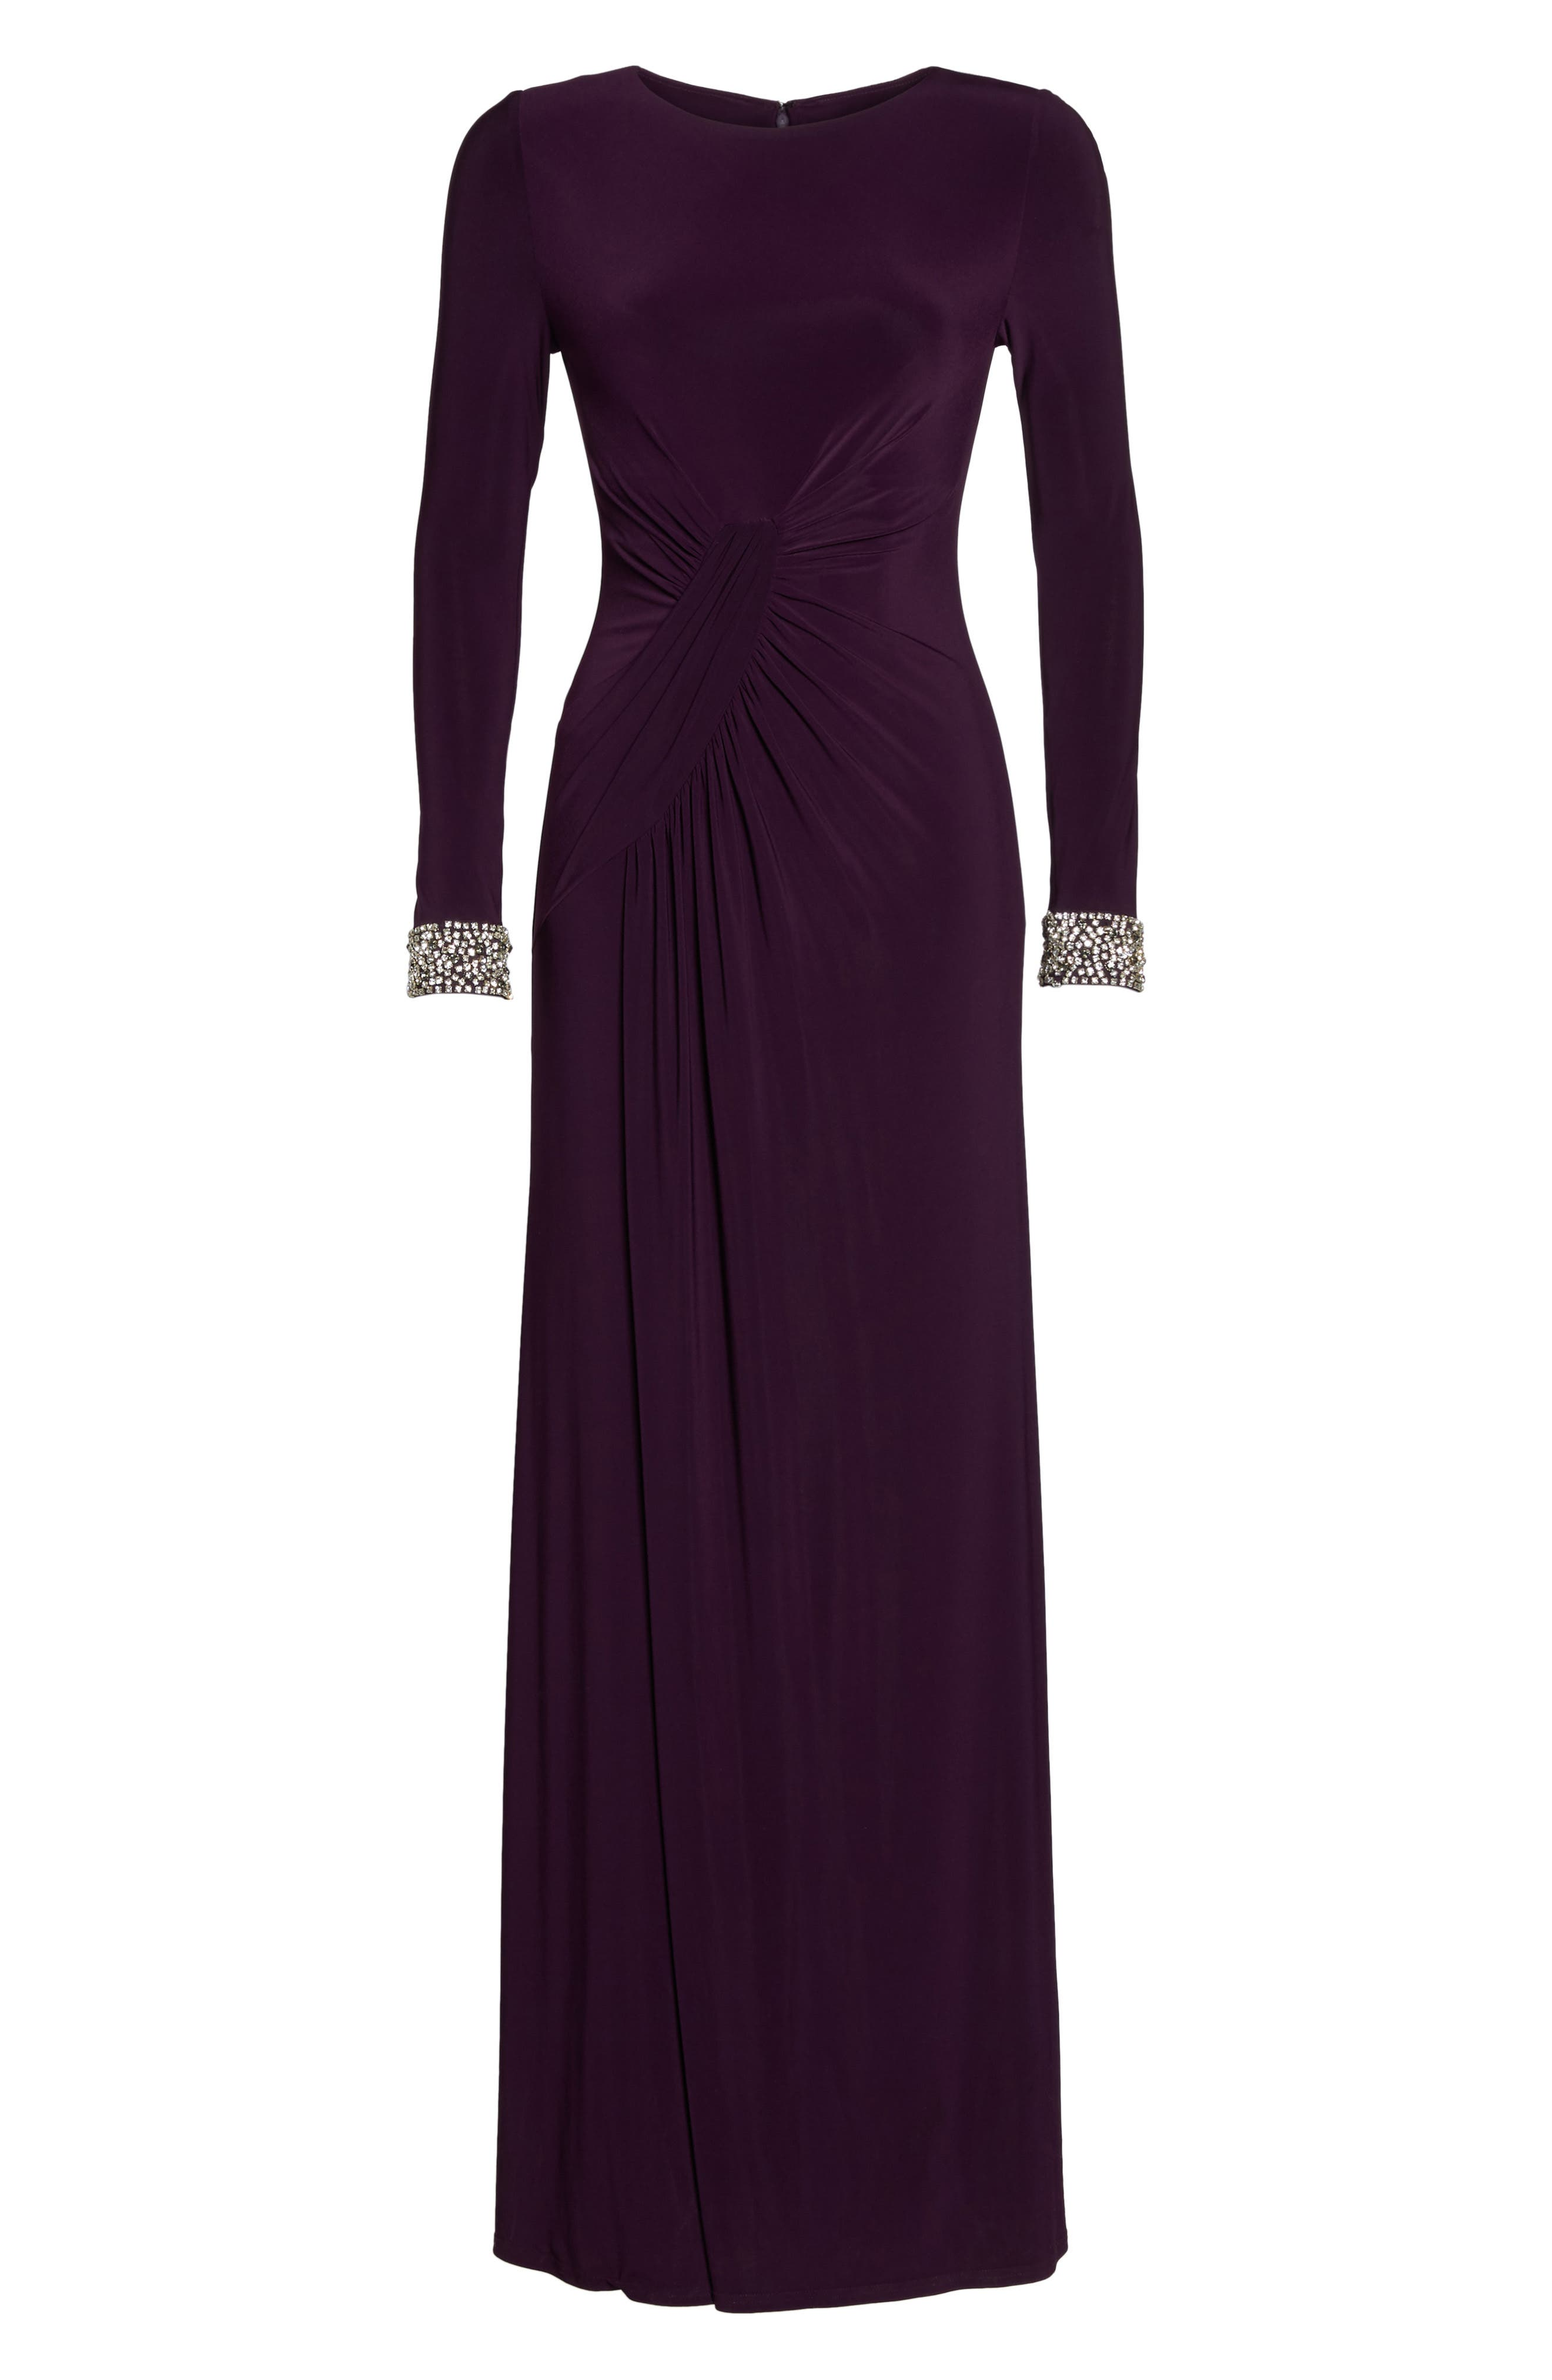 VINCE CAMUTO, Beaded Cuff Ruched Jersey Gown, Alternate thumbnail 6, color, 505